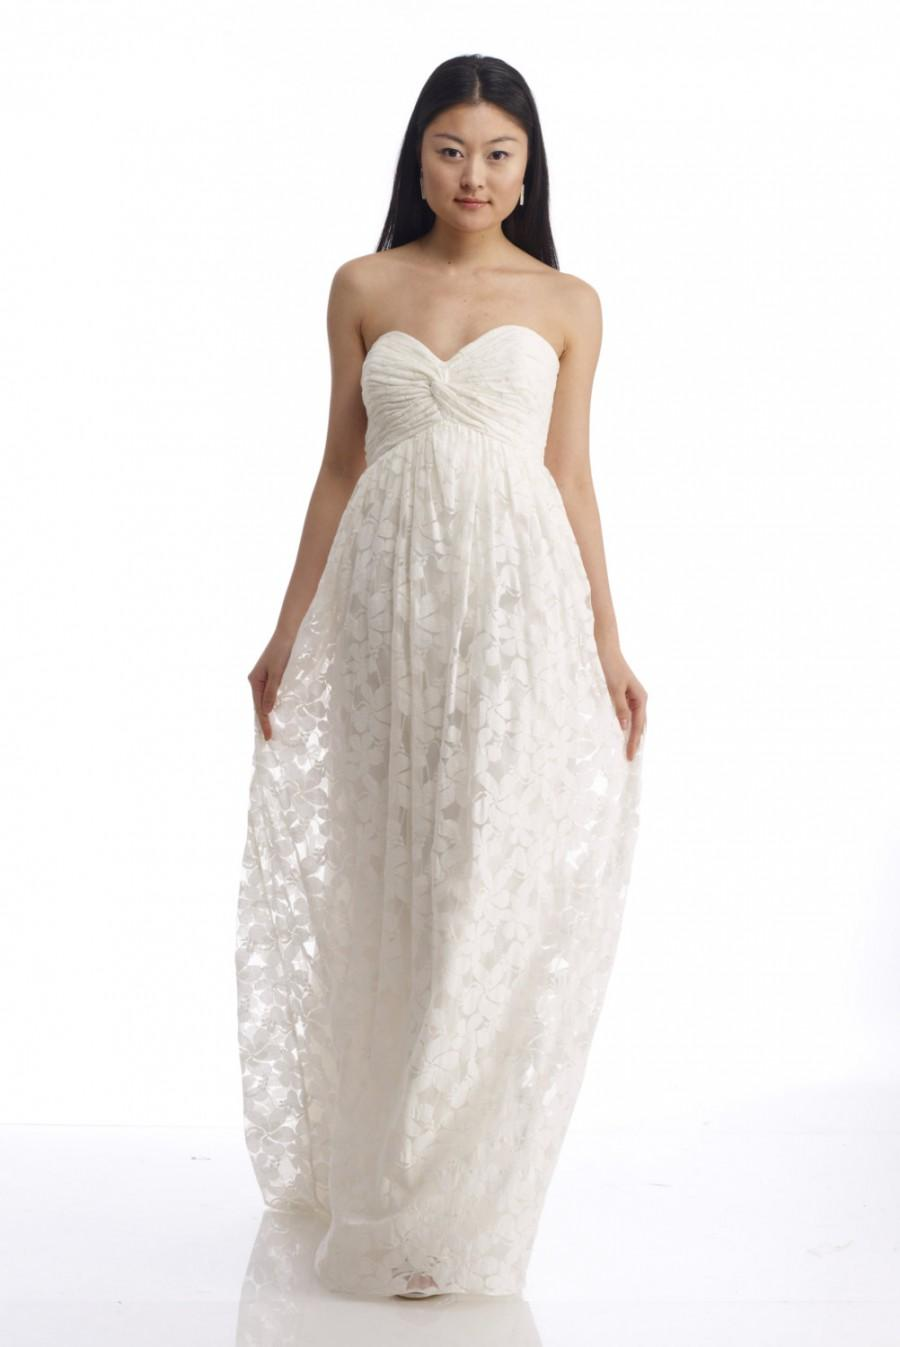 Vintage wedding dress shops in nyc cheap wedding dresses for Vintage wedding dresses nyc